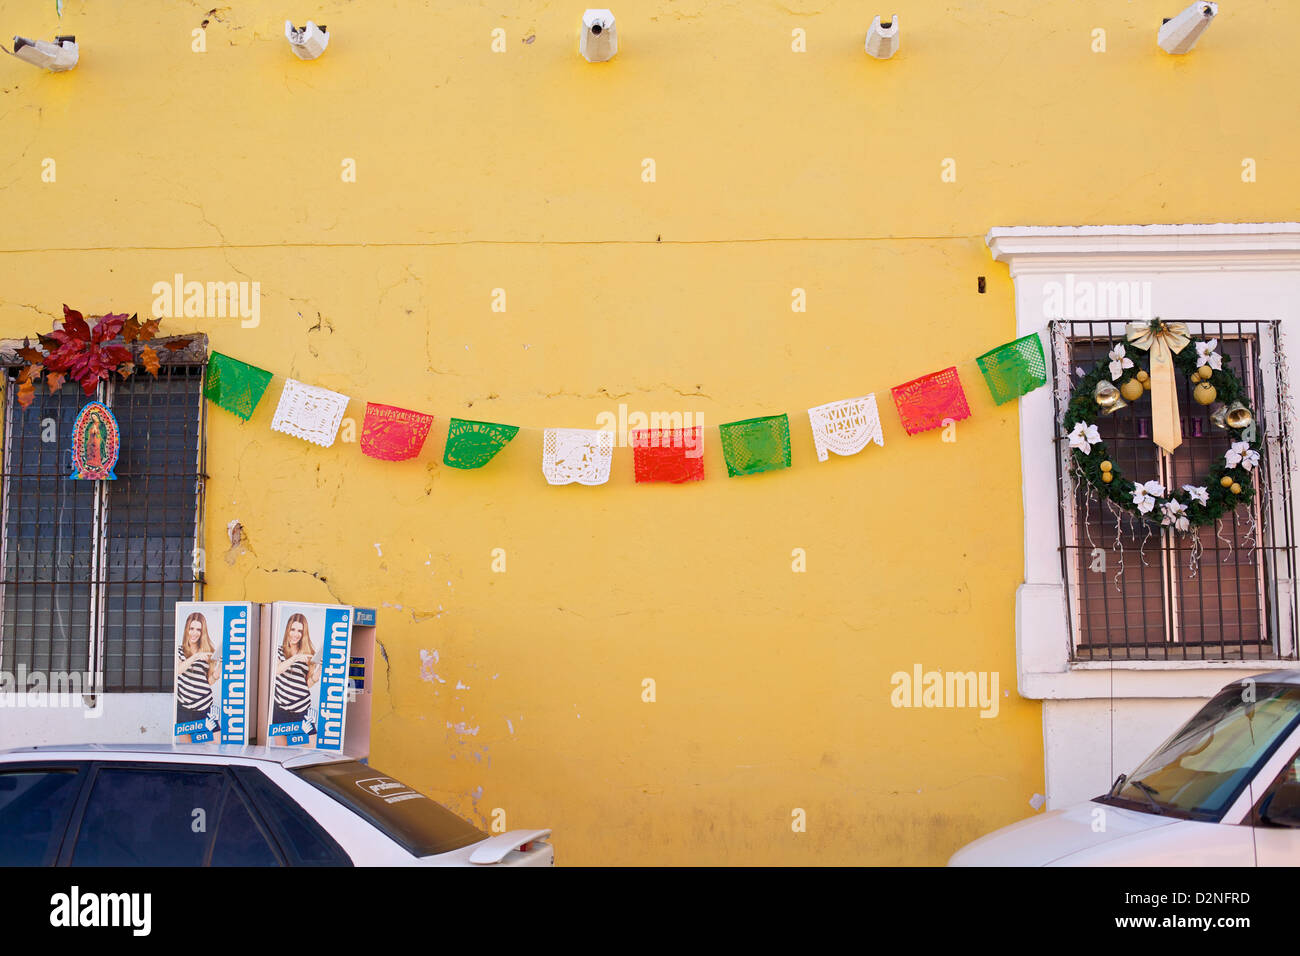 Paper Flags Stock Photos & Paper Flags Stock Images - Alamy